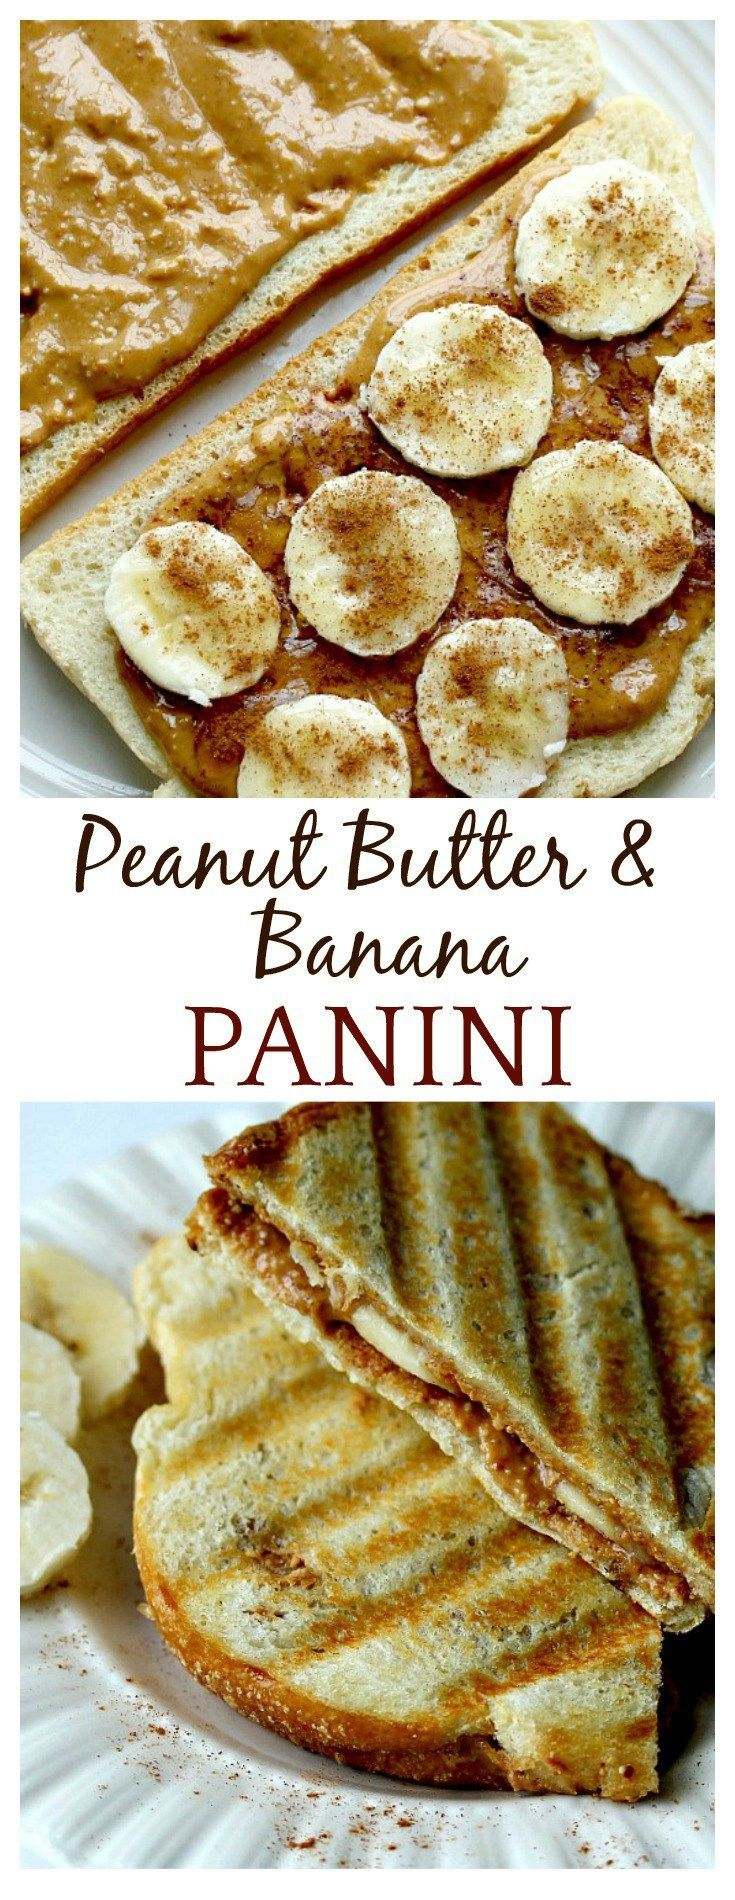 I loved peanut butter and jelly sandwiches as a kid so this grown up panini recipe with honey and cinnamon is just amazing to me! I could eat this every single day!